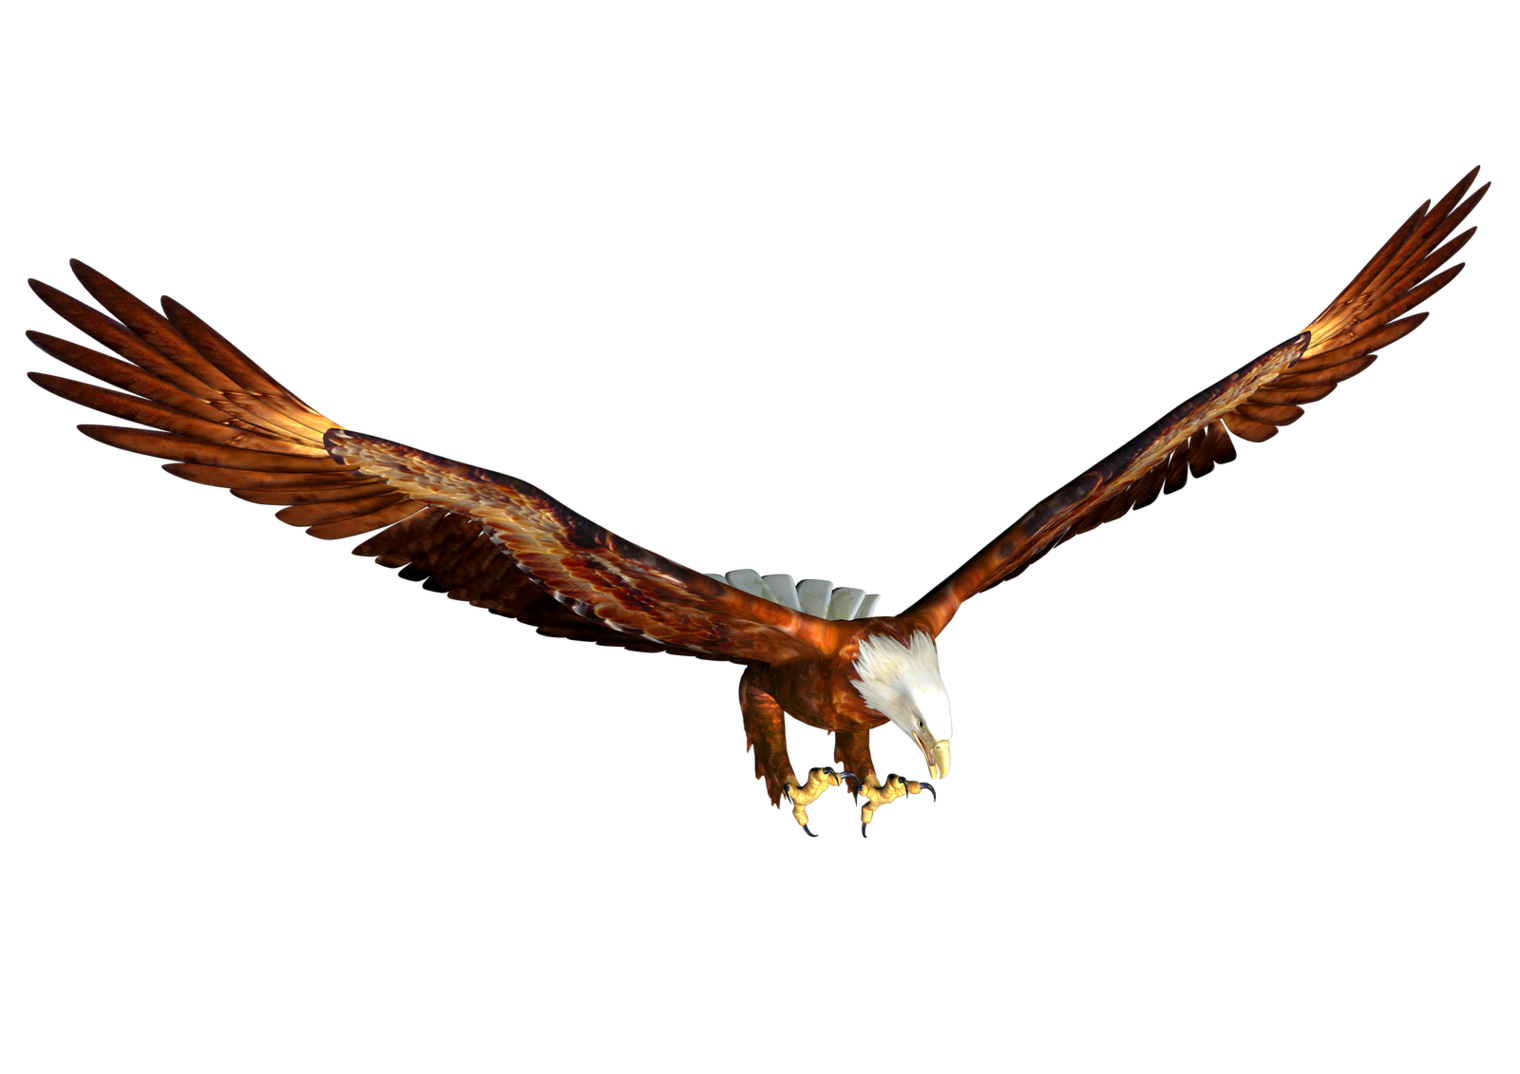 Eagle clipart baby eagle. Flying at getdrawings com